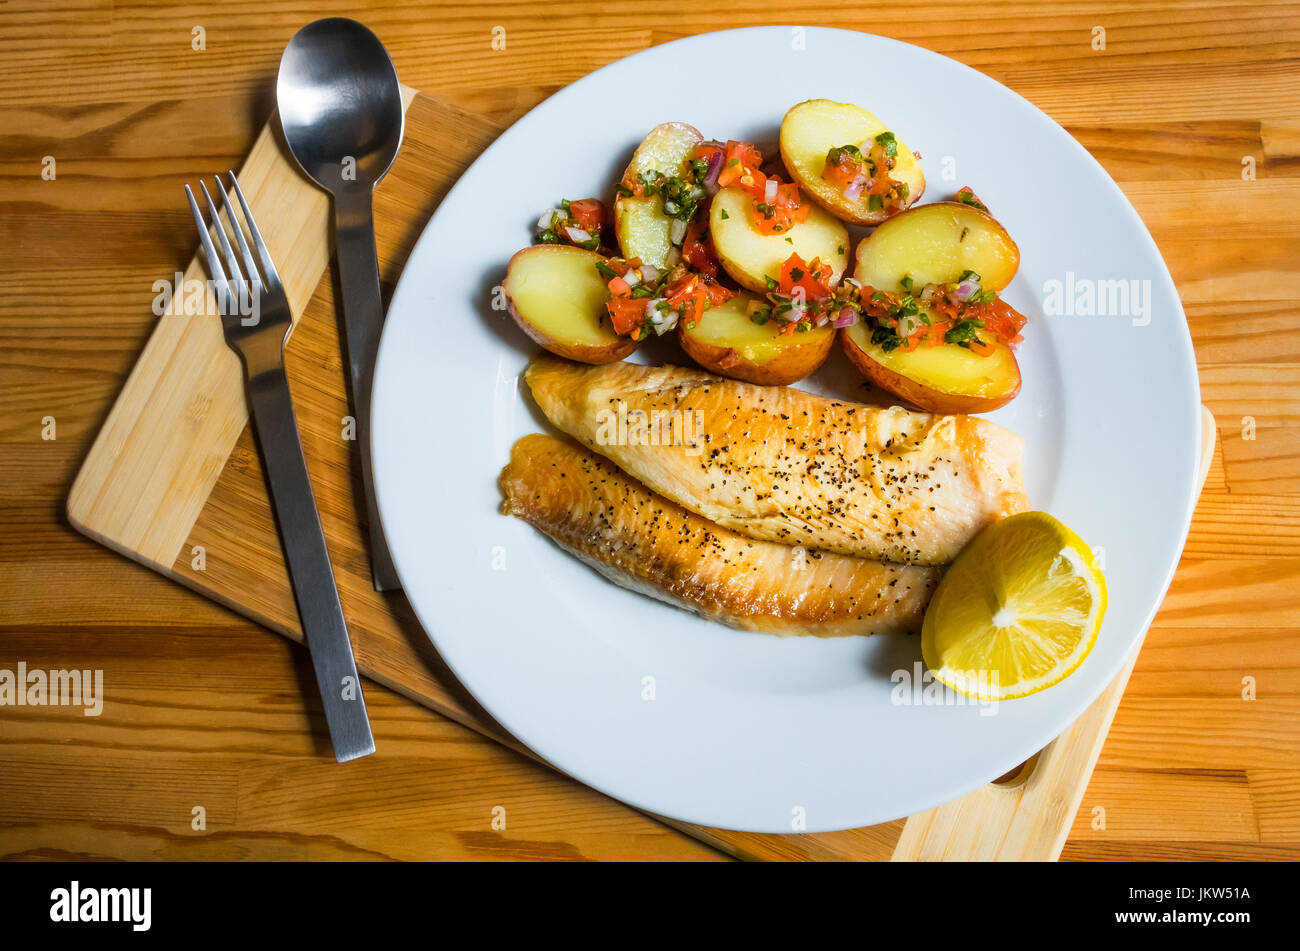 grilled-tilapia-fillets-with-sauted-pota